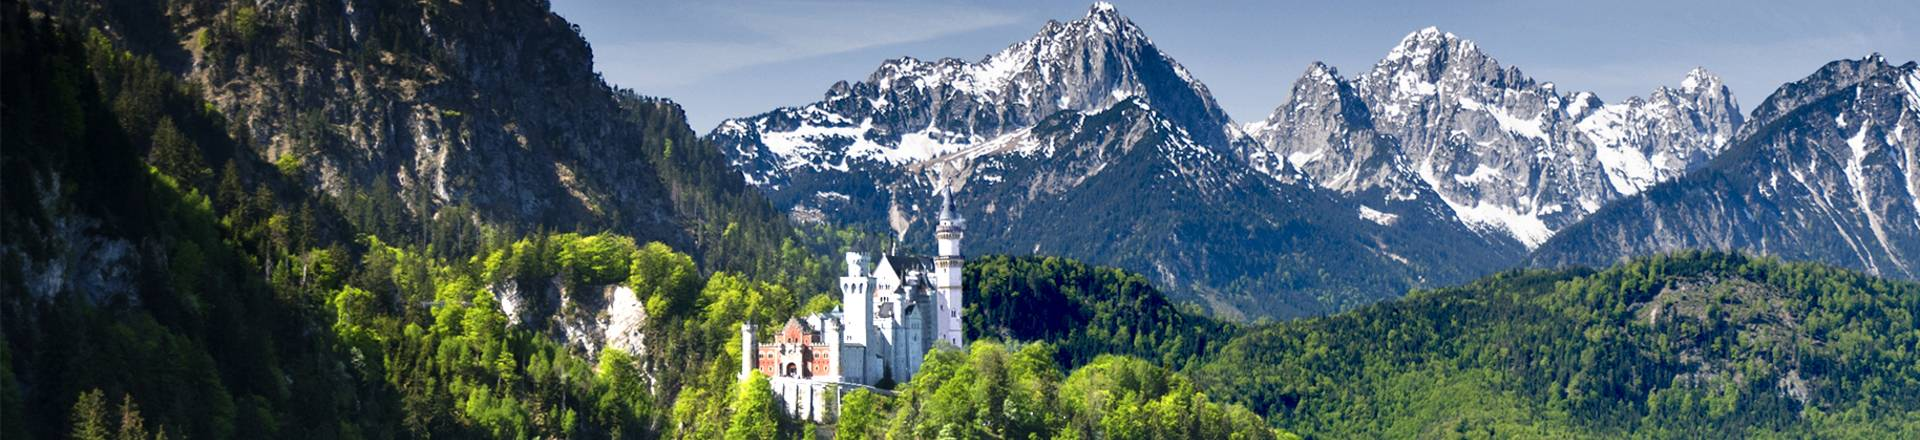 The Neuschwanstein Castle, a well-known symbol for the bavarian Allgaeu region